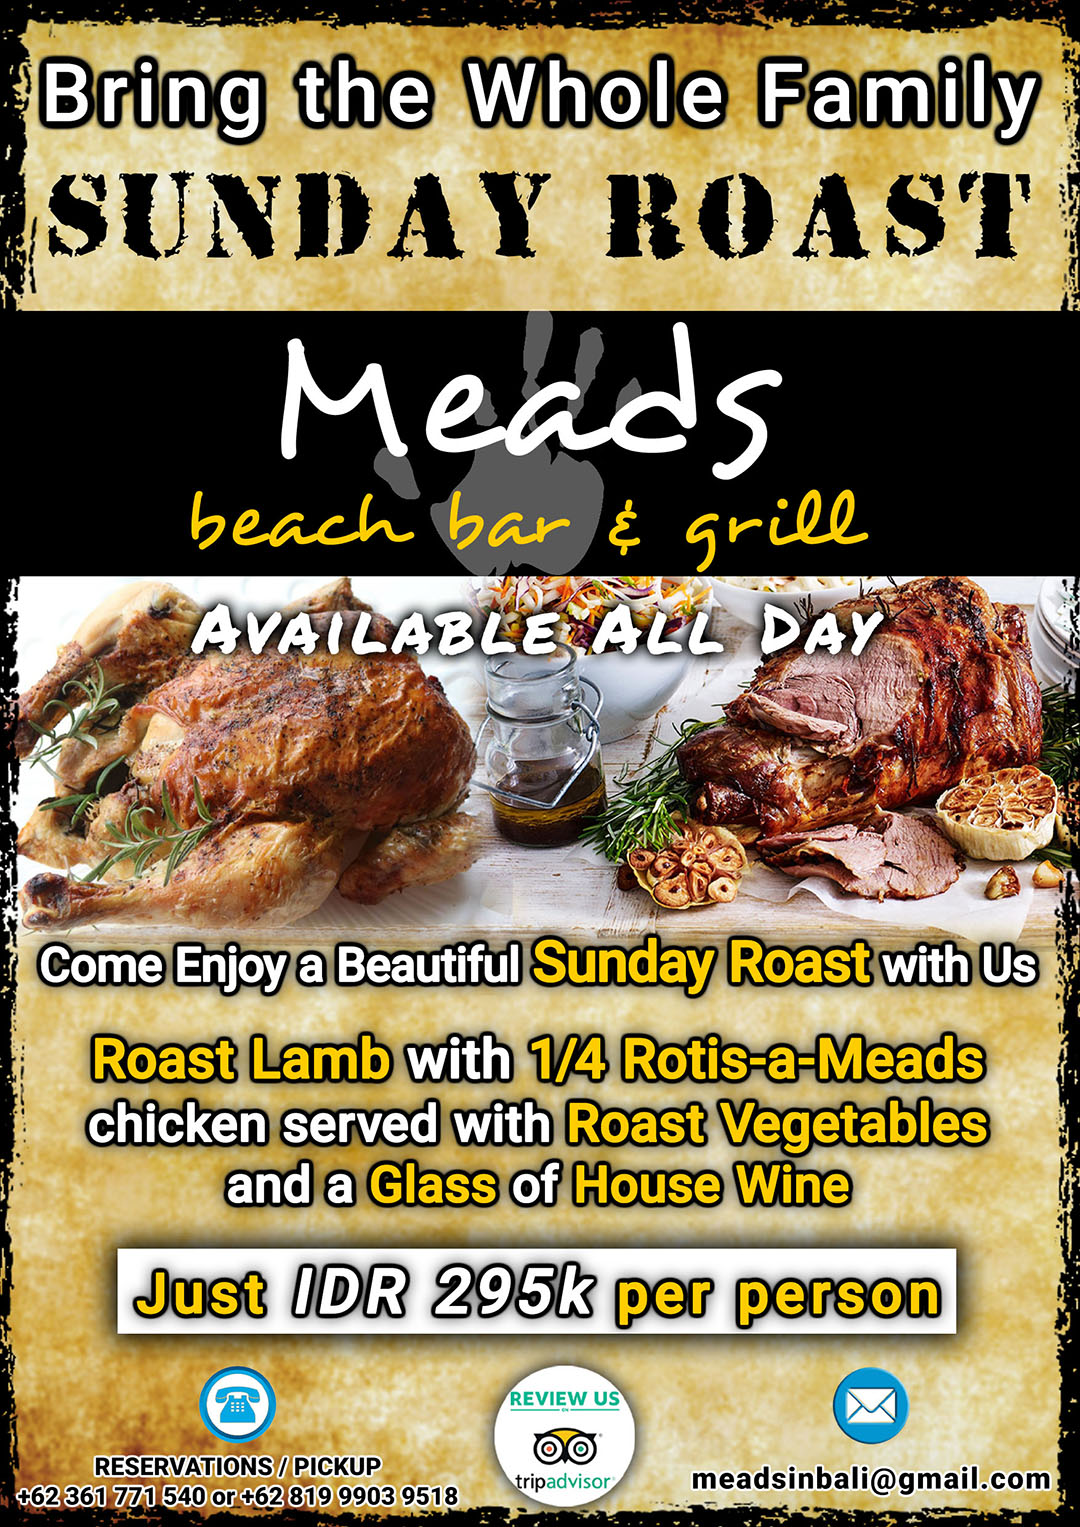 Meads Bali Sunday Roast for the Whole Family